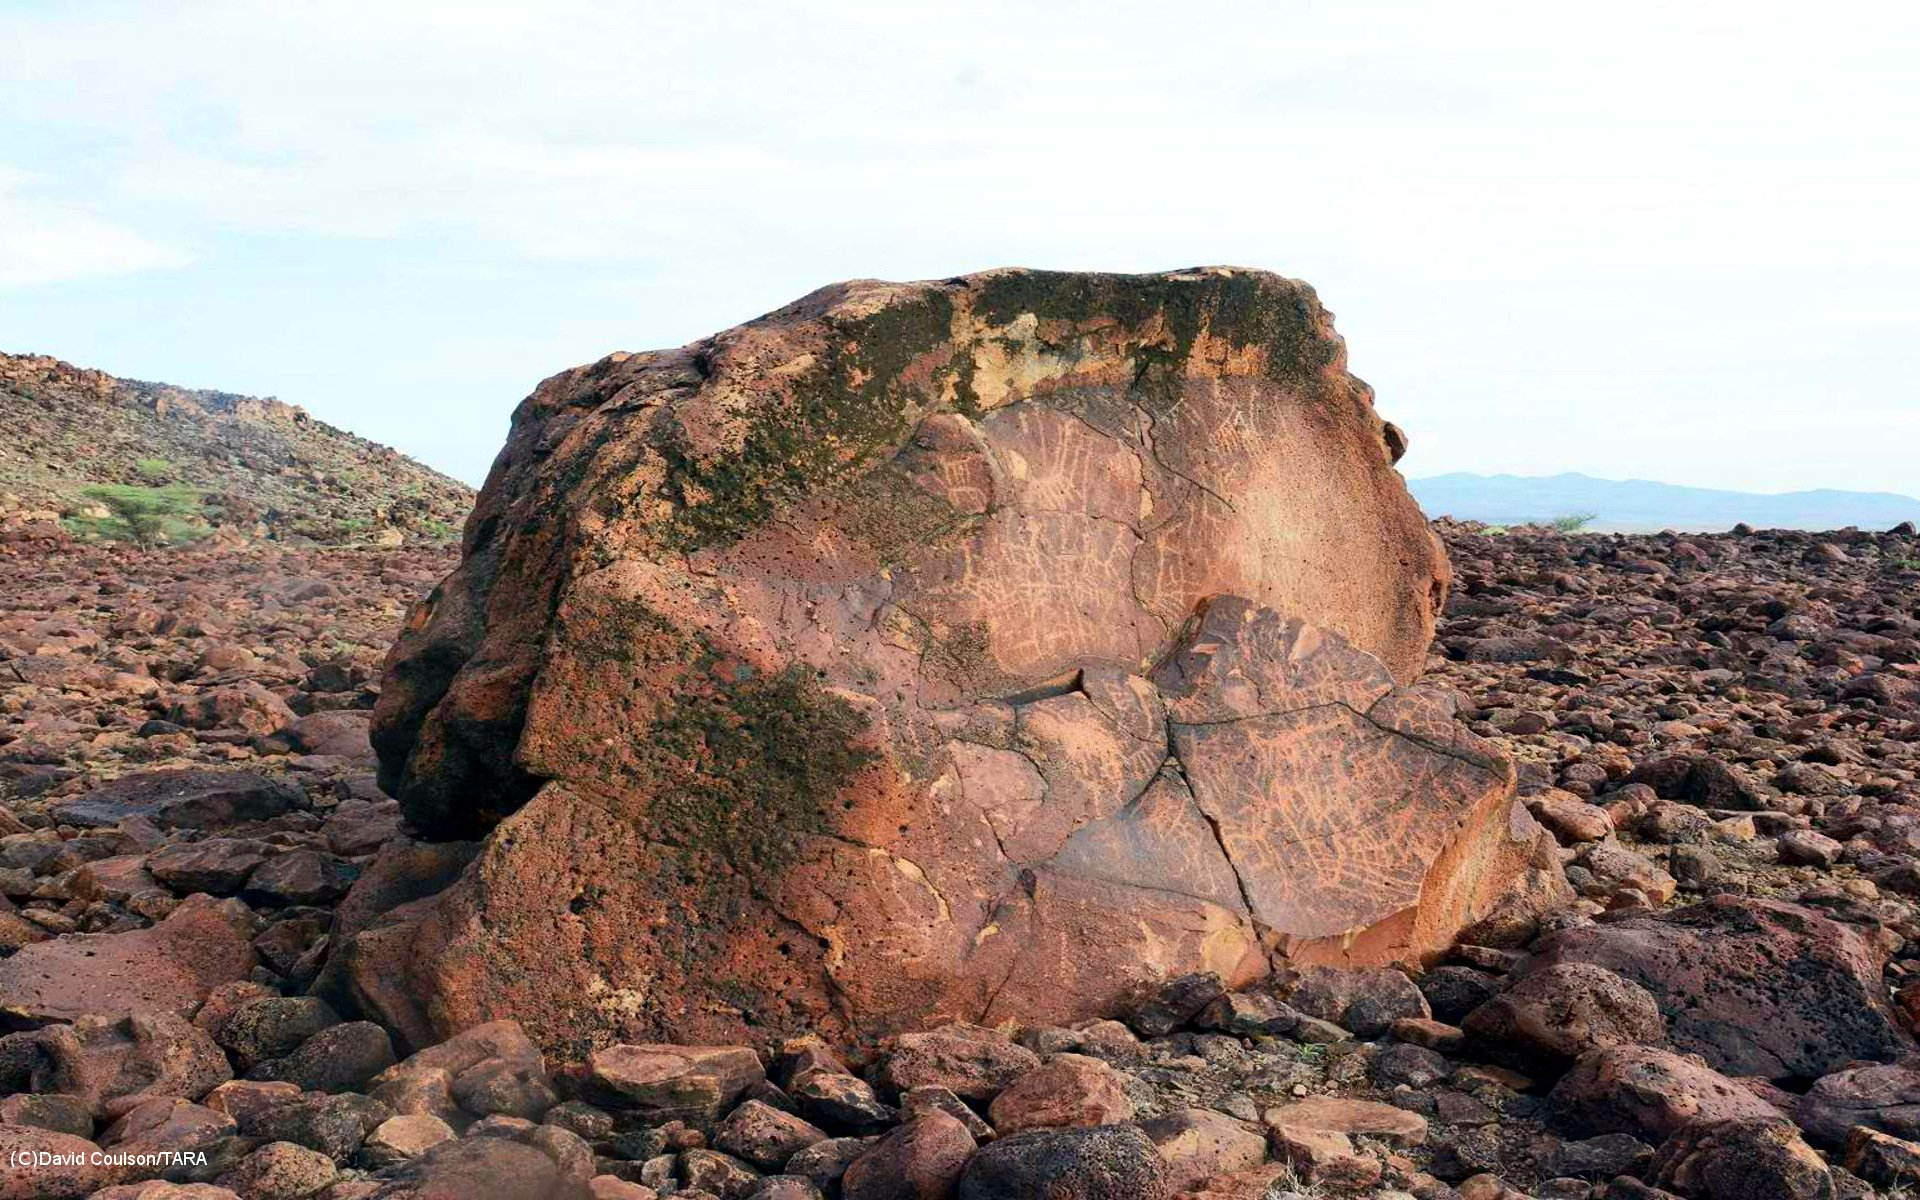 Examples of rock art found in Namoratunga I.